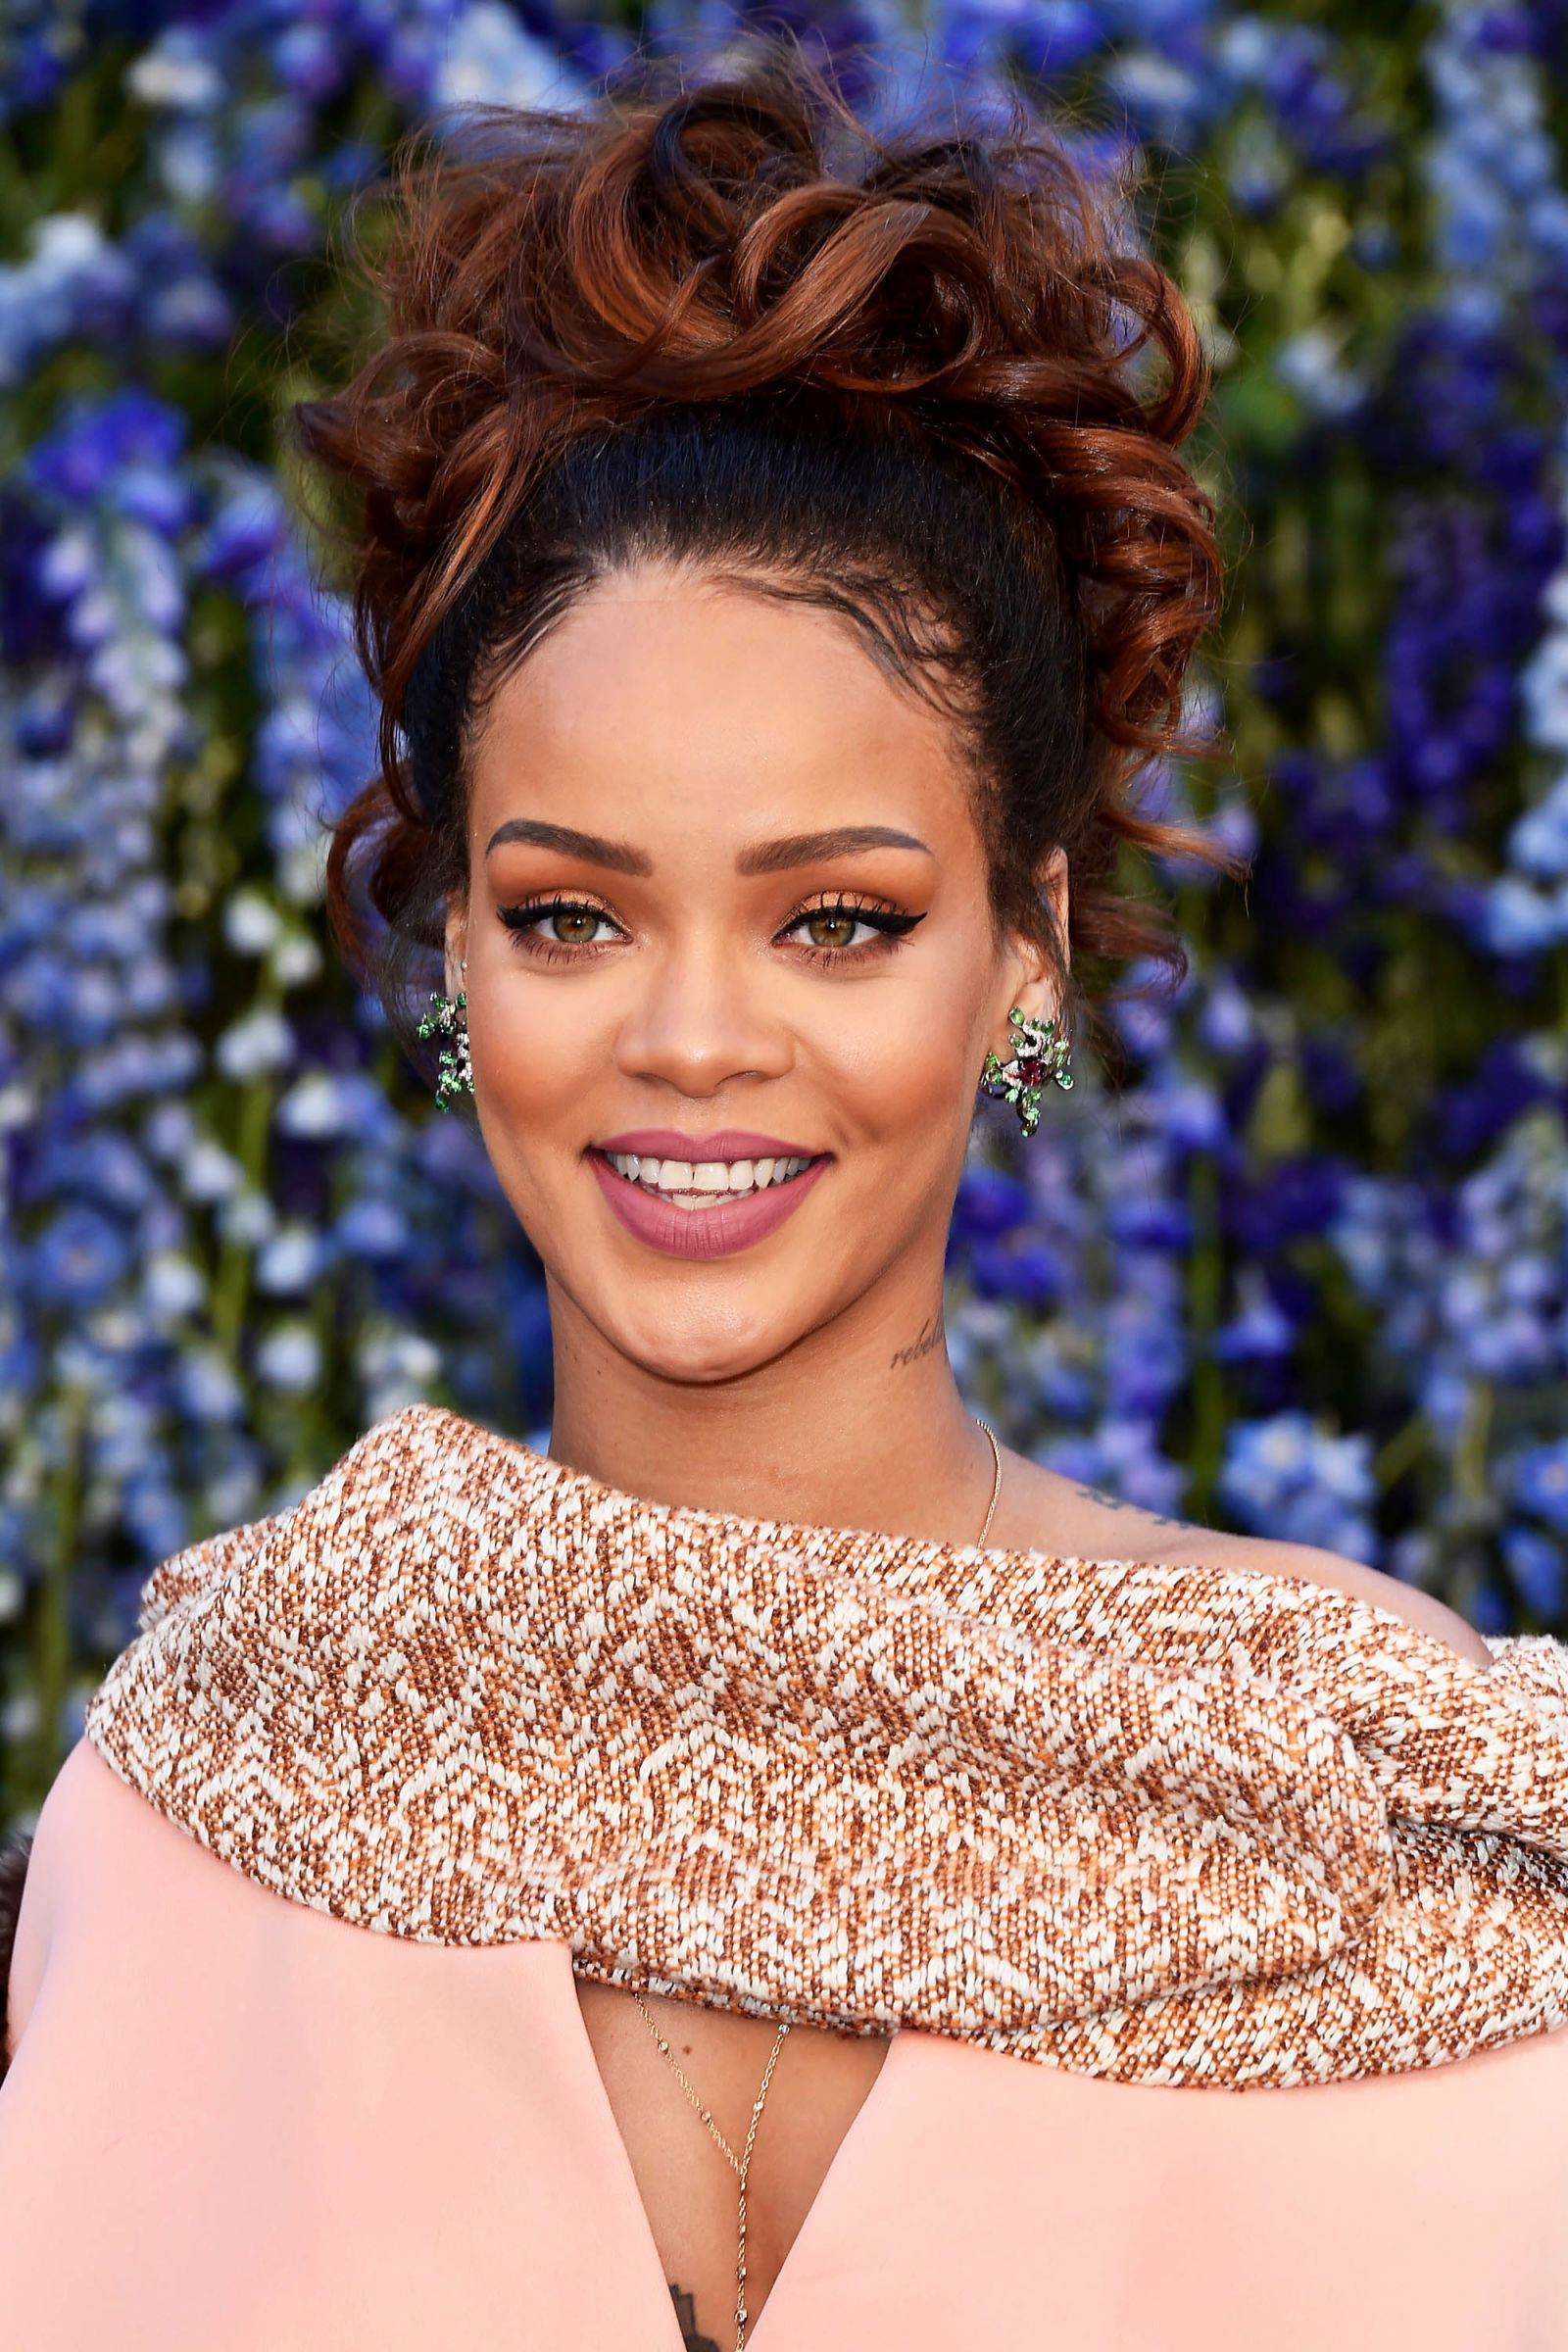 Rihanna Hairstyles Rihanna's Most Iconic Hair Looks  Rihanna Hairstyles And Makeup